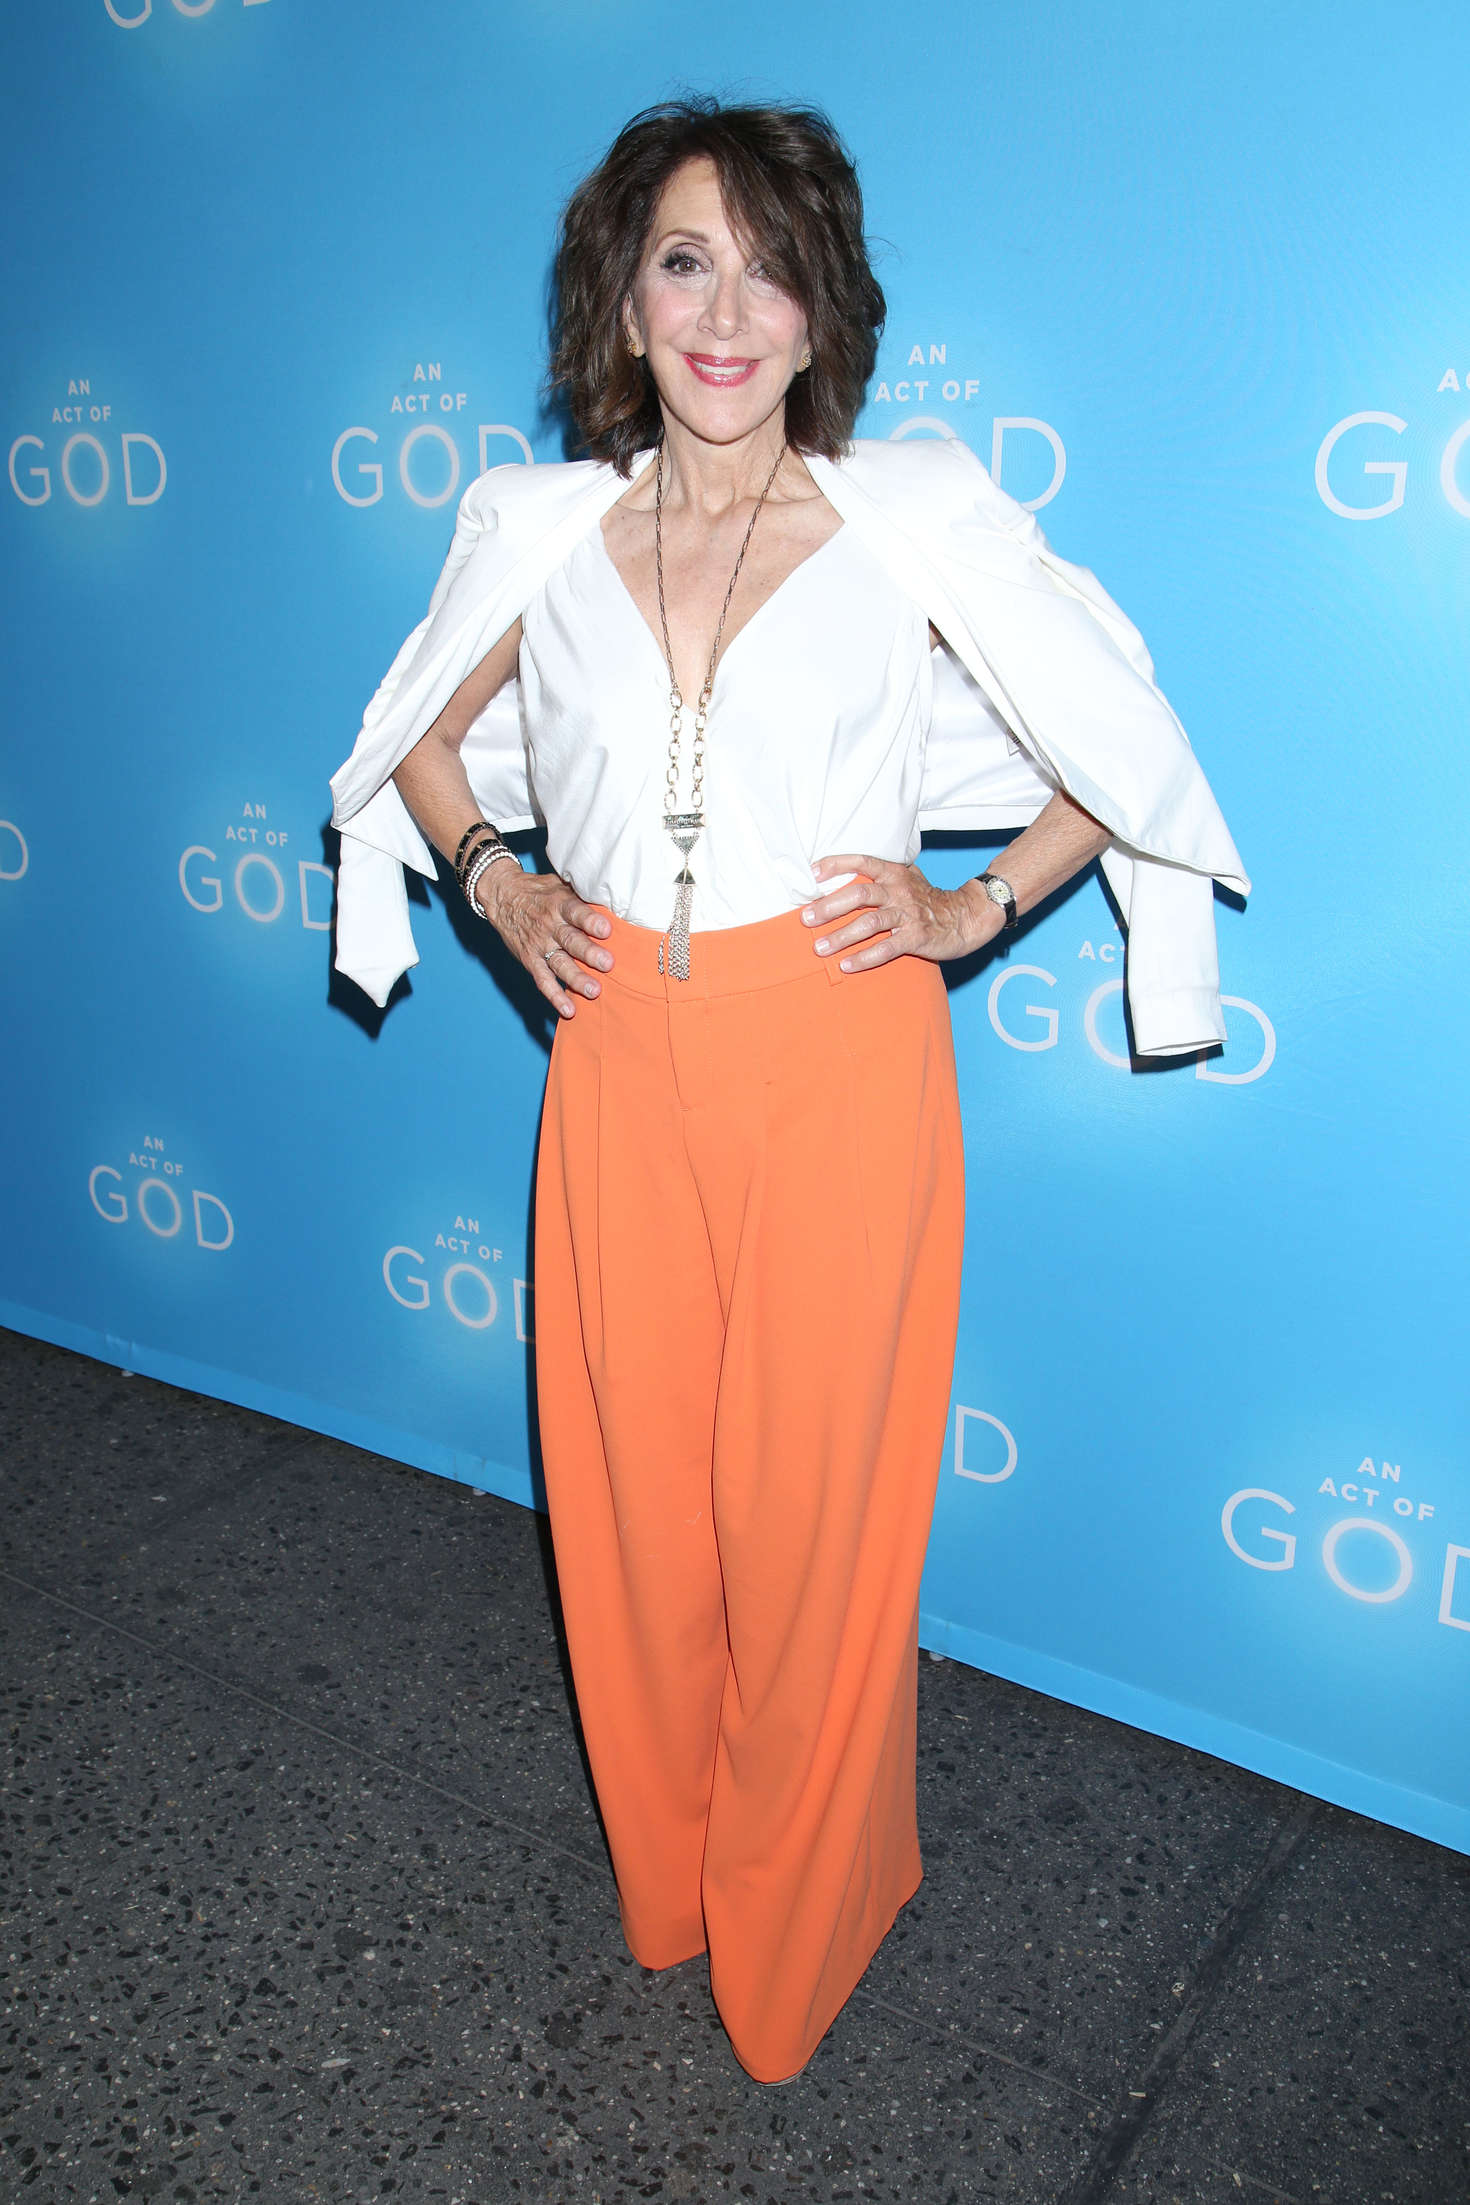 Andrea Martin - Opening night of An Act of God at the Booth Theatre in New York